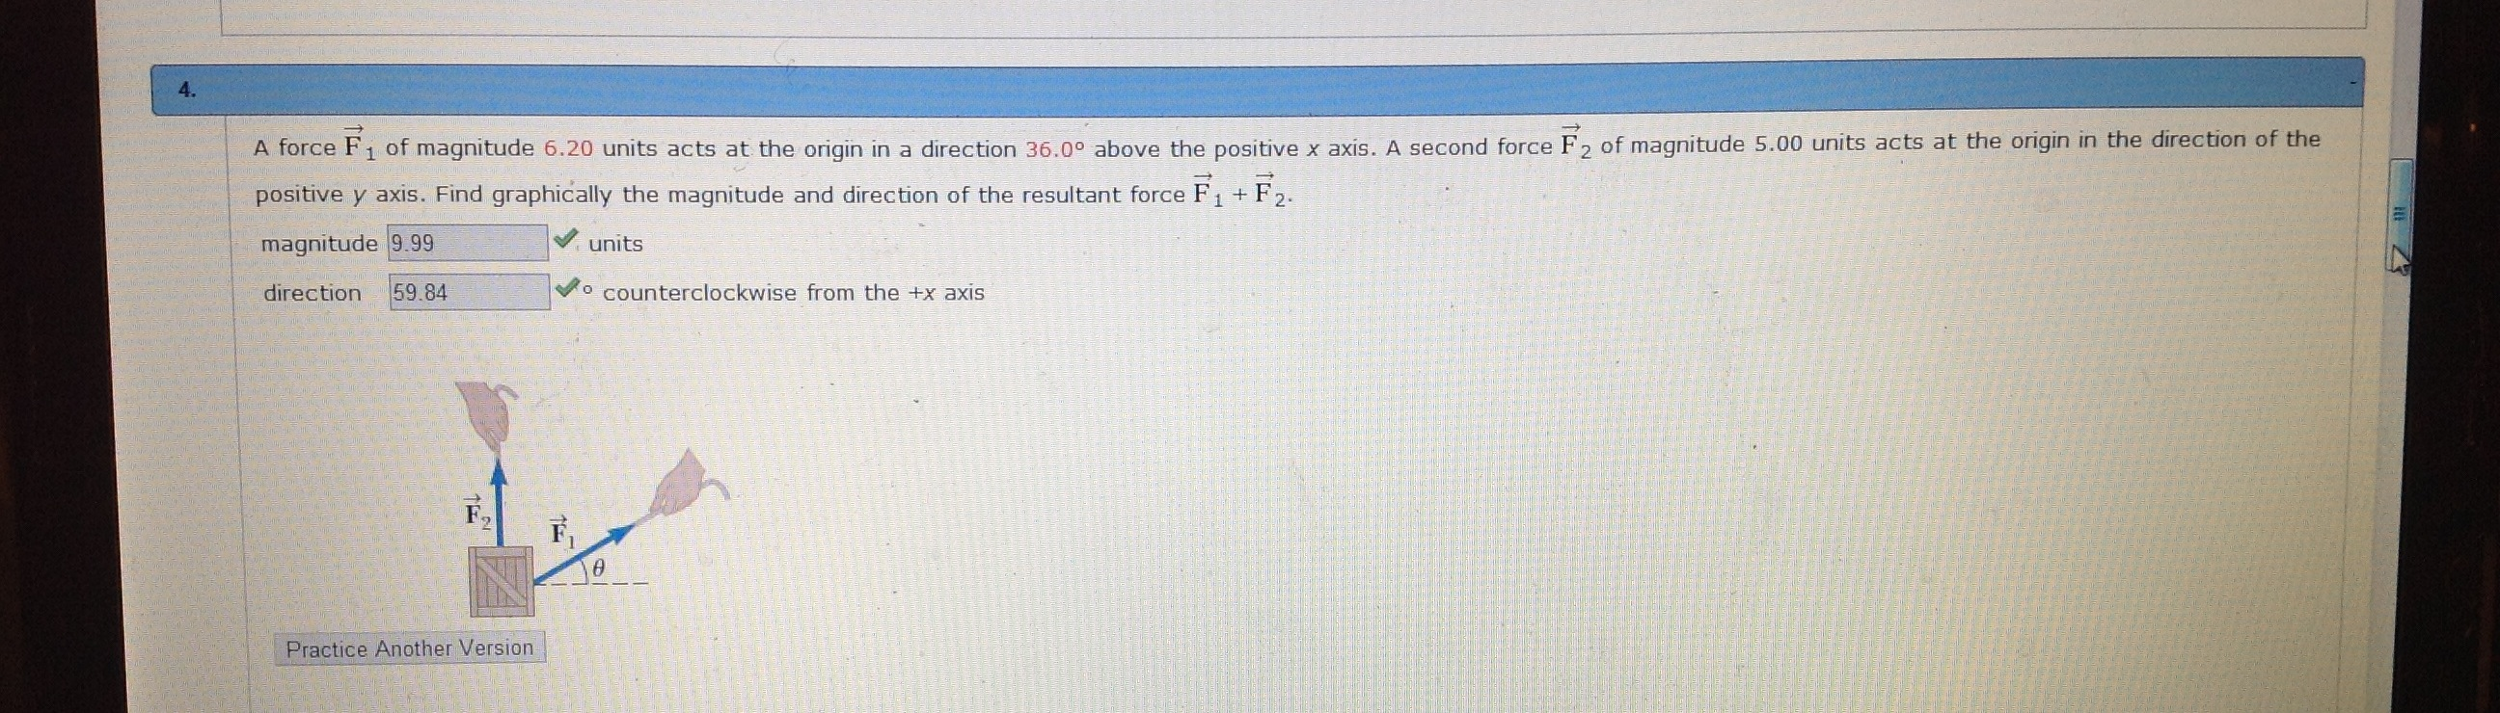 Hey guys so I did this problem and I understand ho